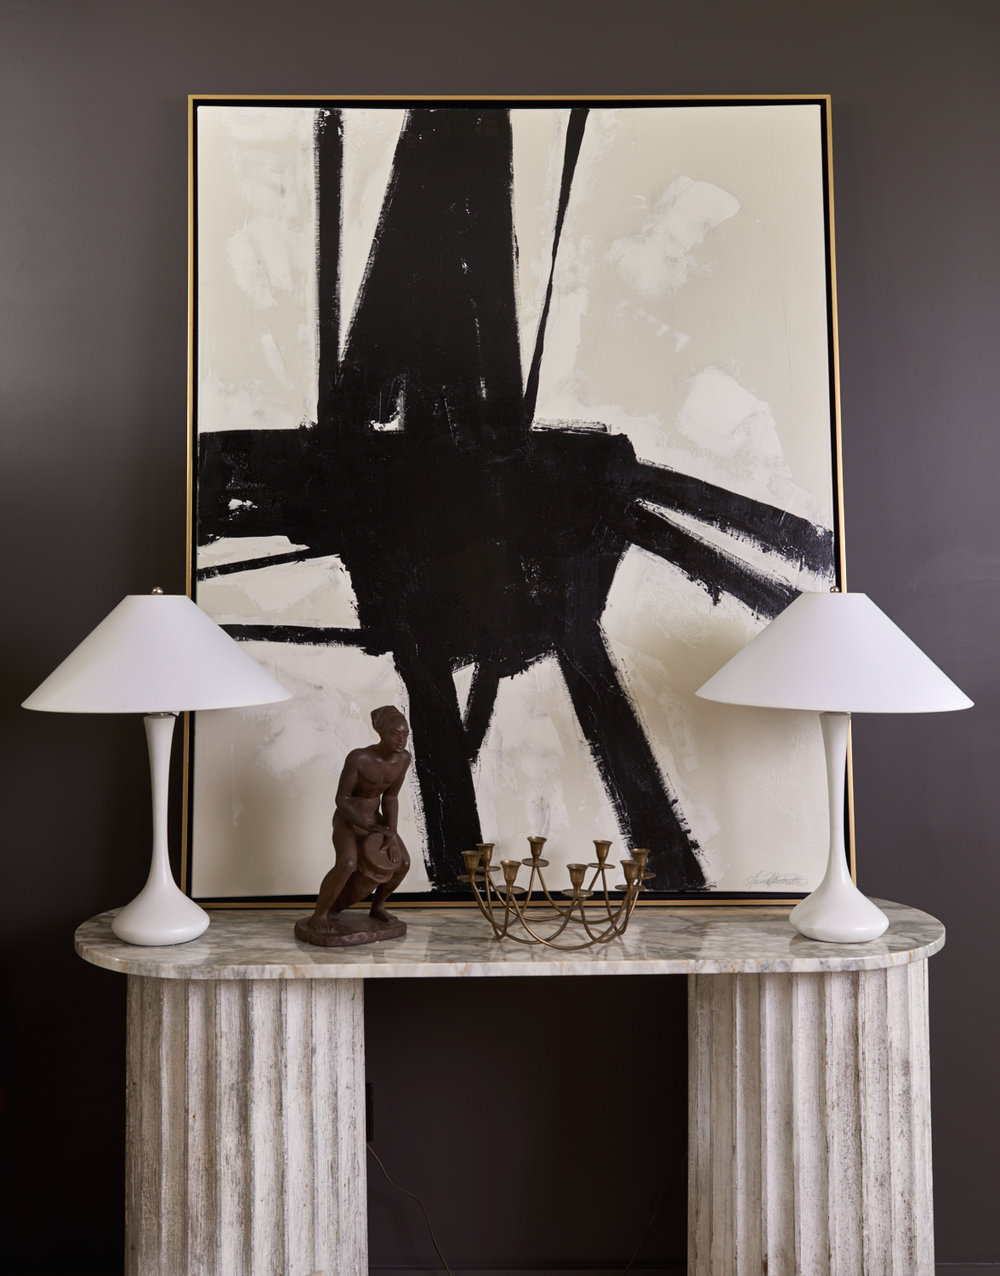 Black & white painting, price upon request, 1924 Laurel lamps c. 1980,  $1800, marble and wood column console, $2800